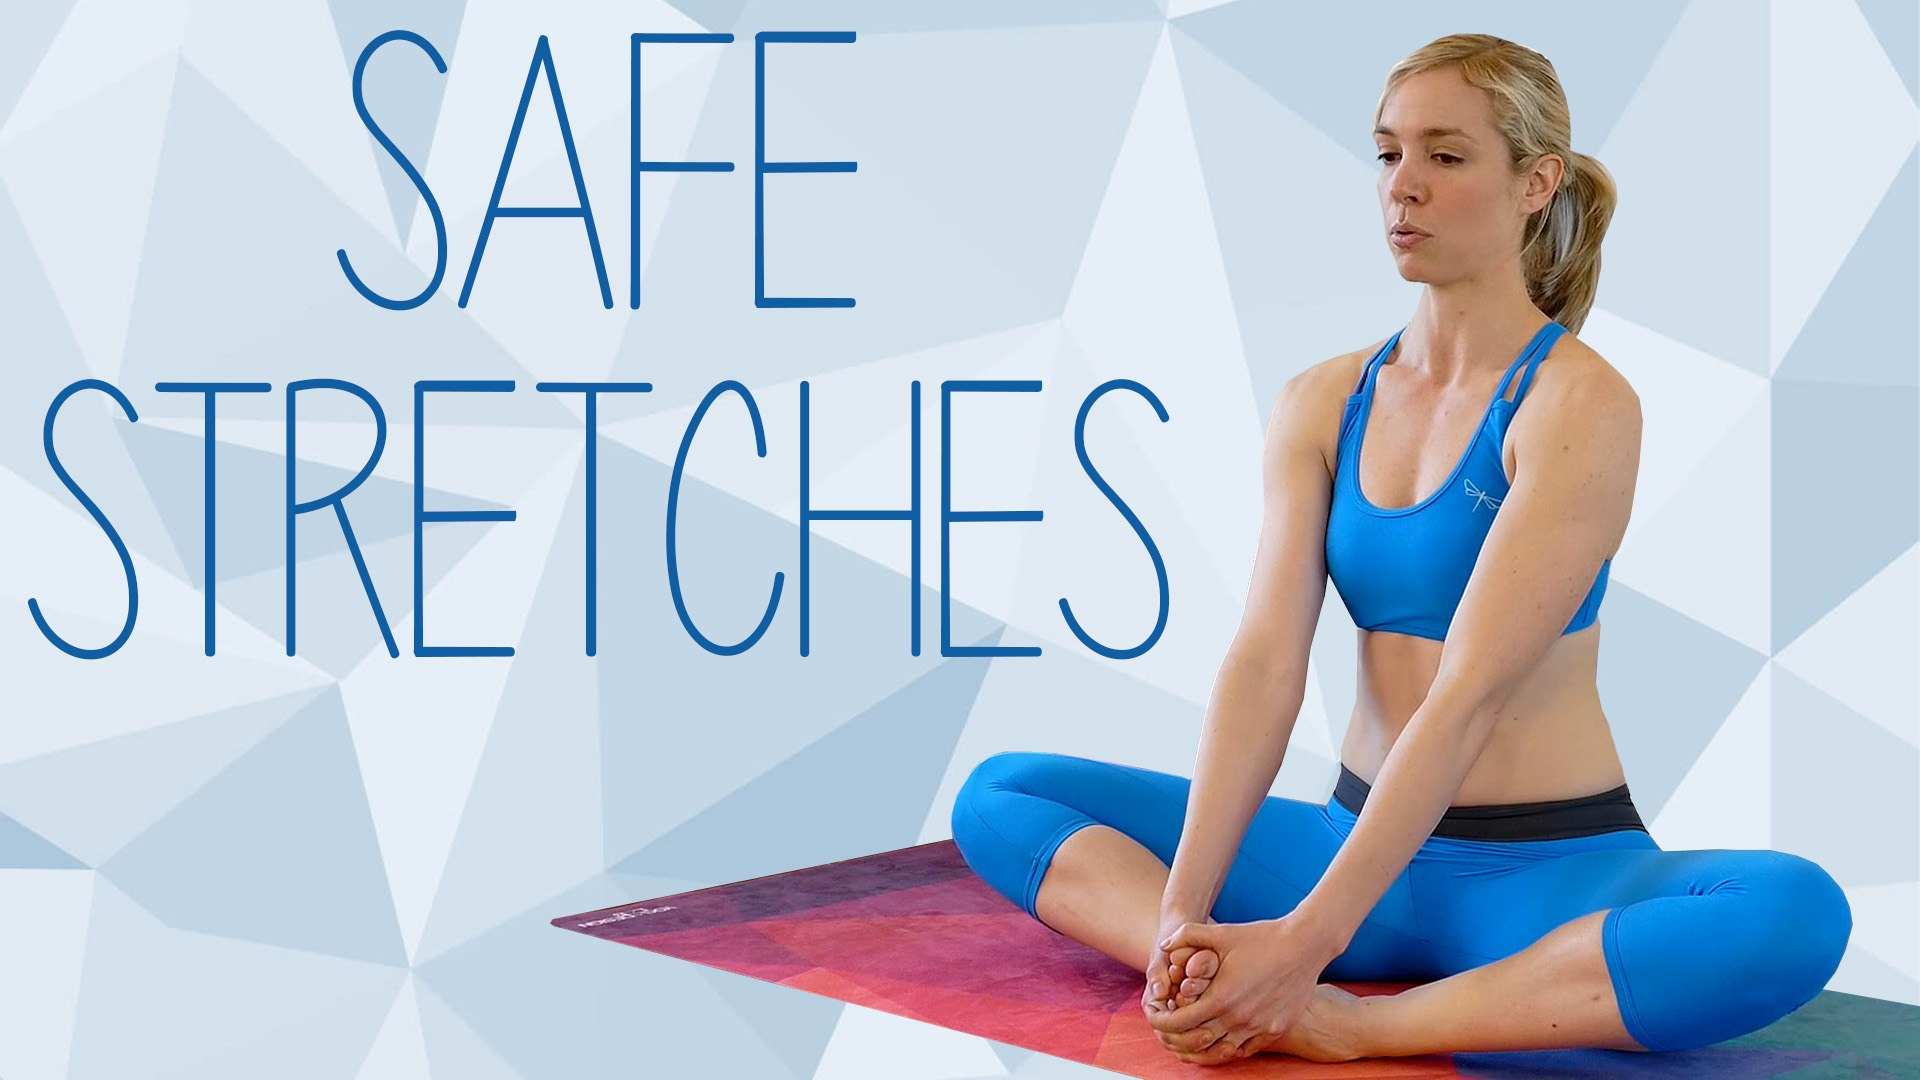 20 Minute Full Body Stretch For Pain Flexibility Safe Beginners Yoga Stretches With Lindsey Video Dailymotion